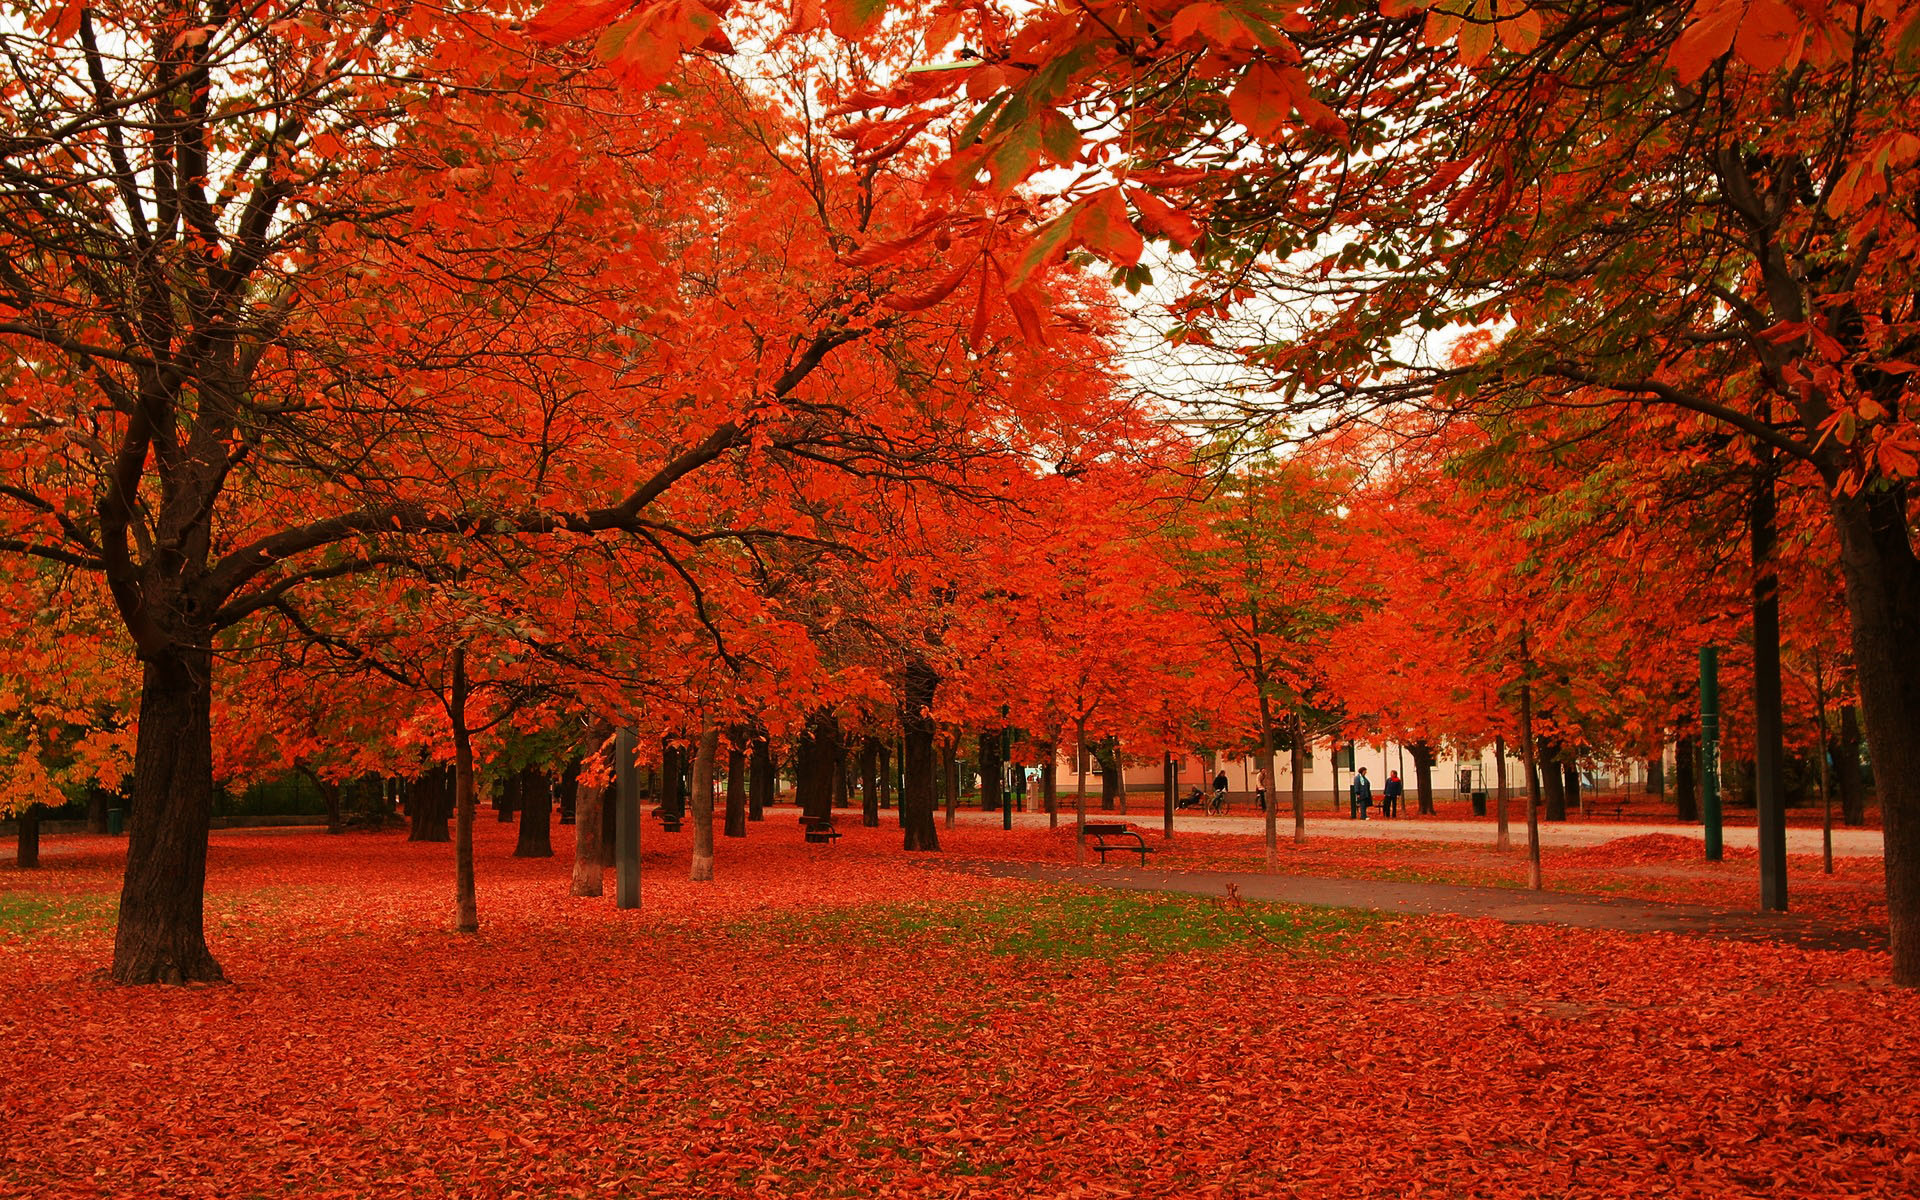 Labels Red Autumn Leaves Photography Hd Wallpapers For: Red Autumn Leaves Wallpapers